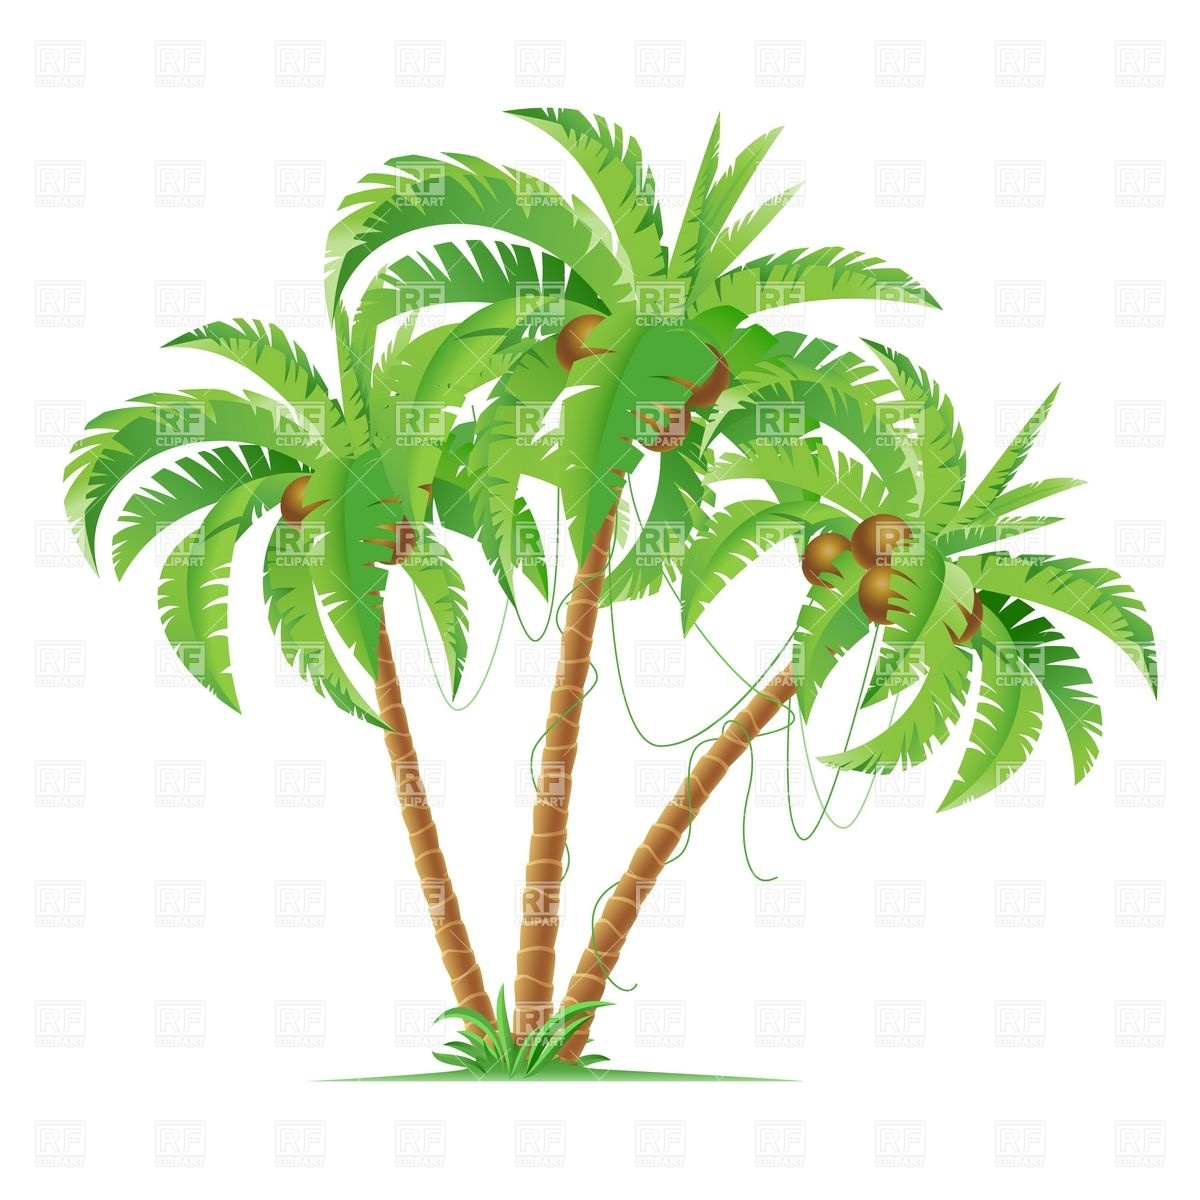 Blooming palm tree clipart #14